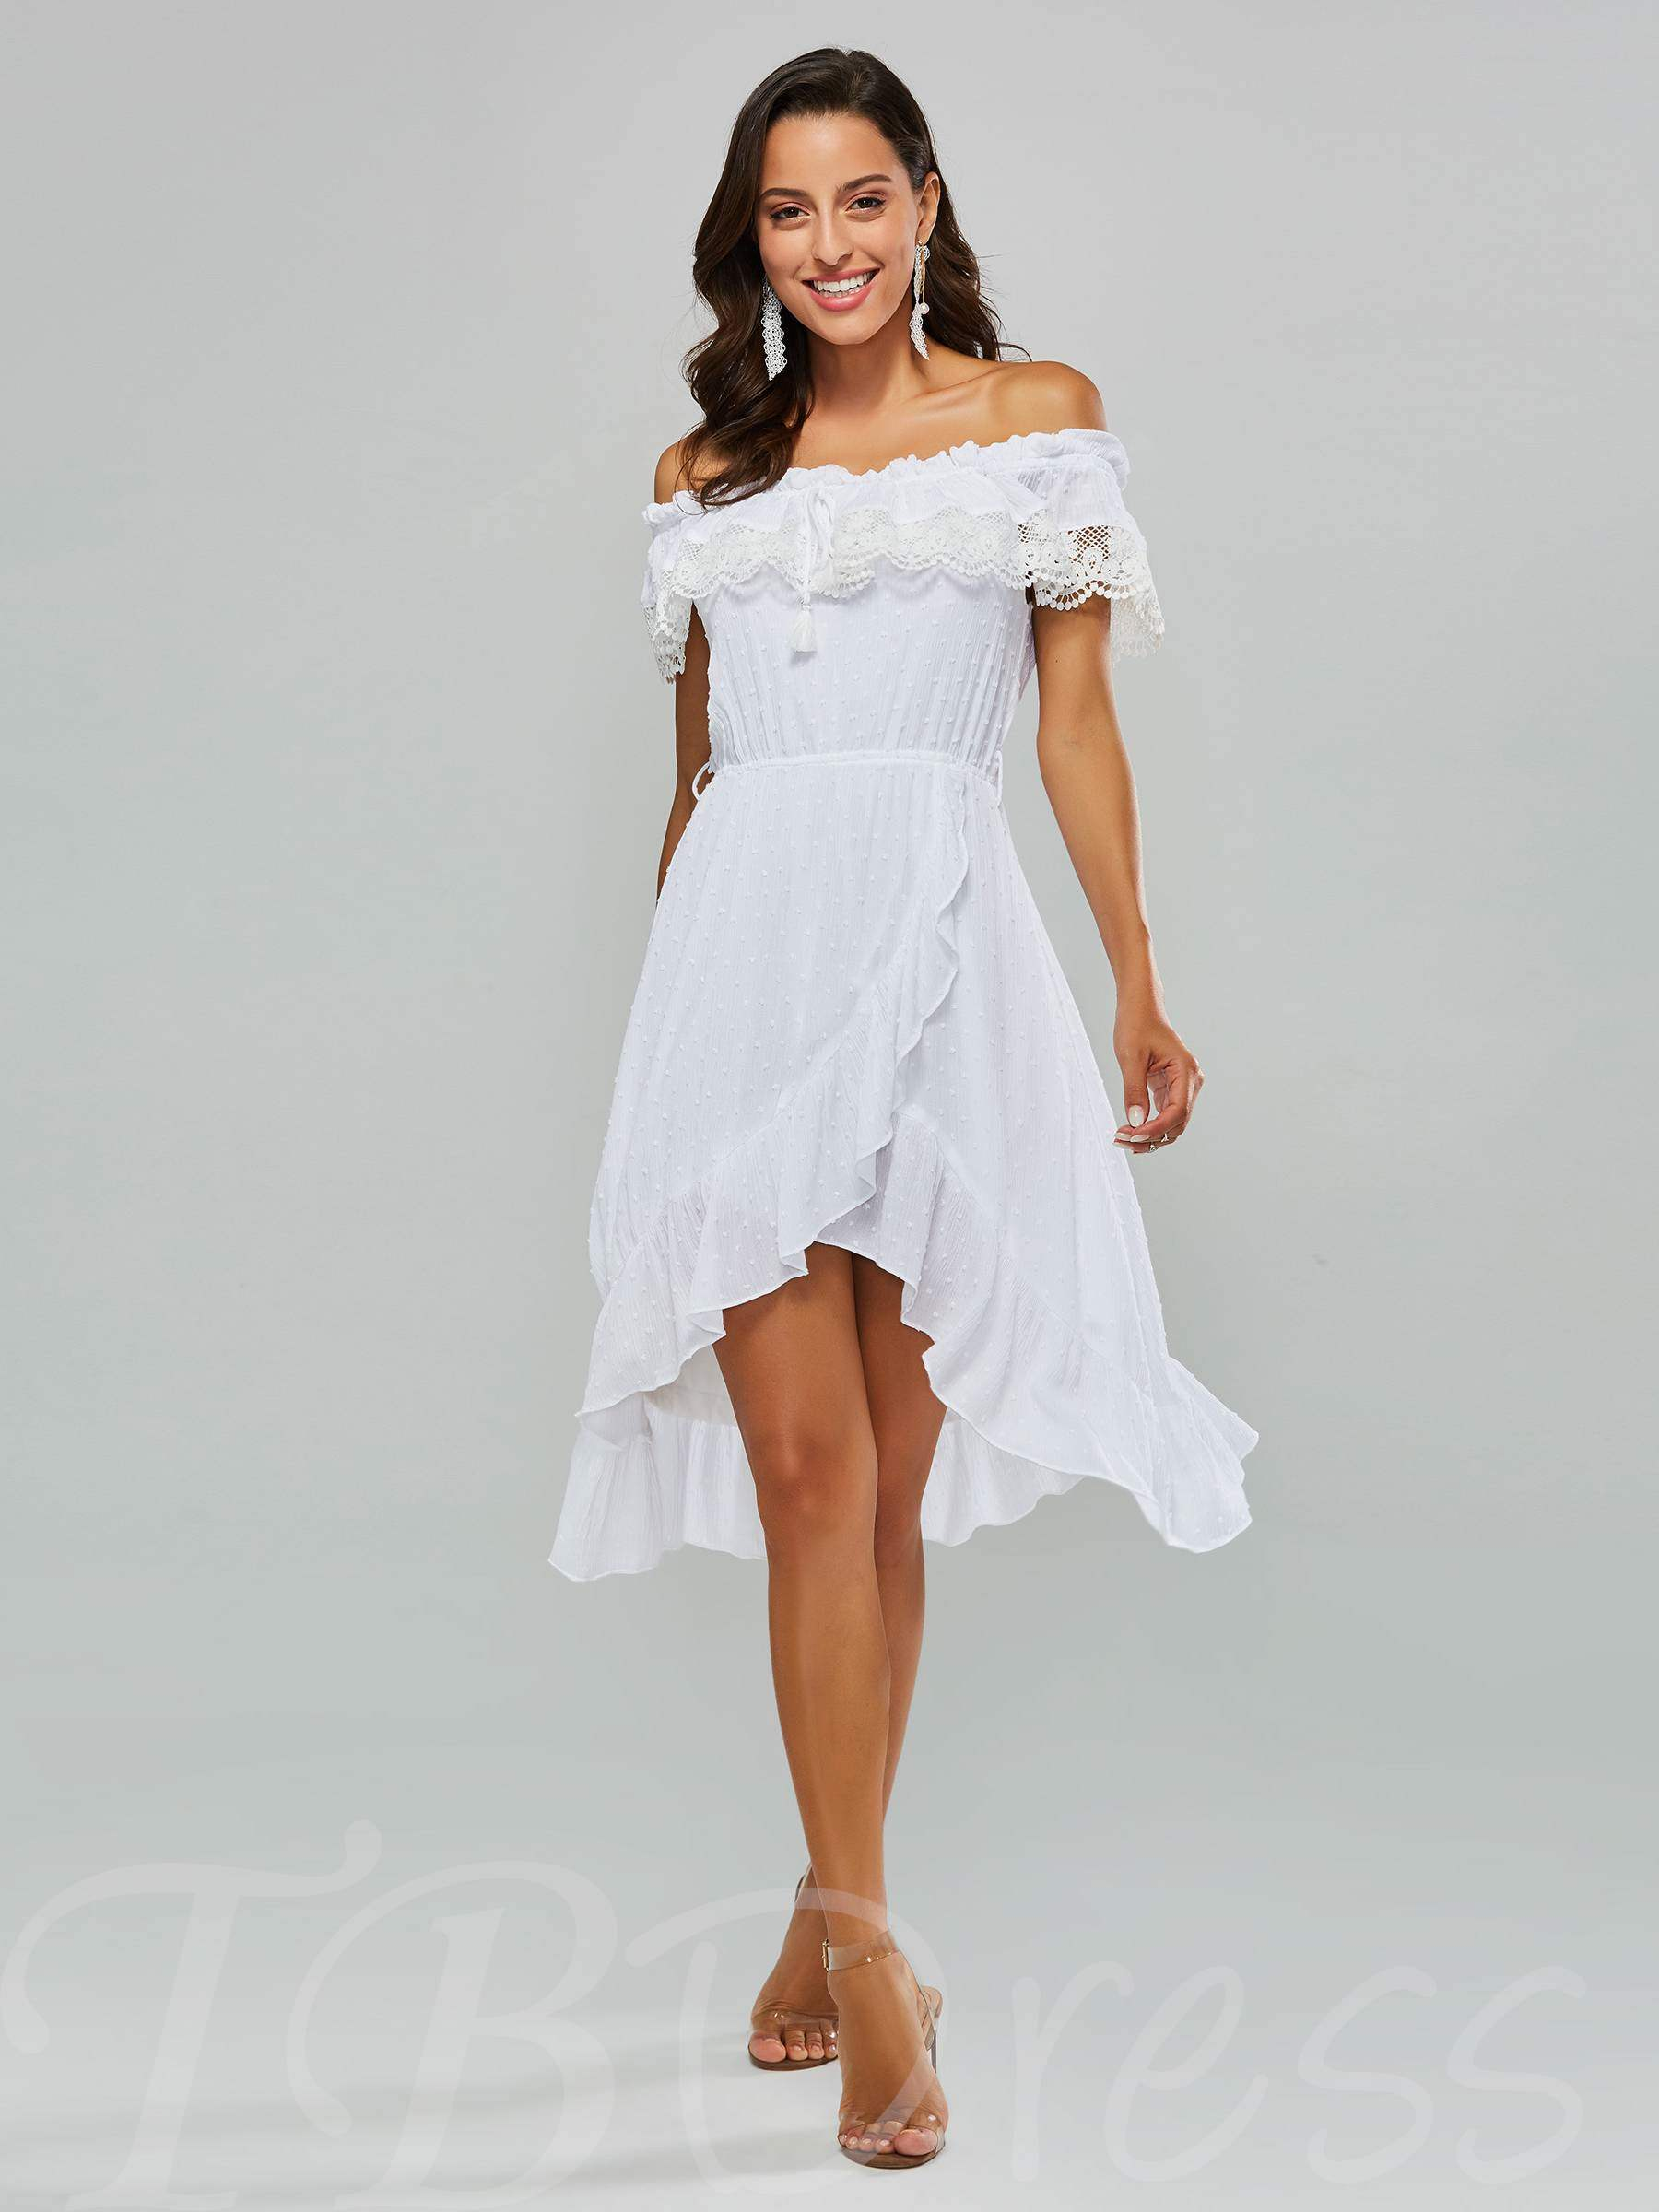 Buy White Short Sleeve Ruffle Lace Women's Day Dress, Spring,Summer,Fall, 13341972 for $17.65 in TBDress store